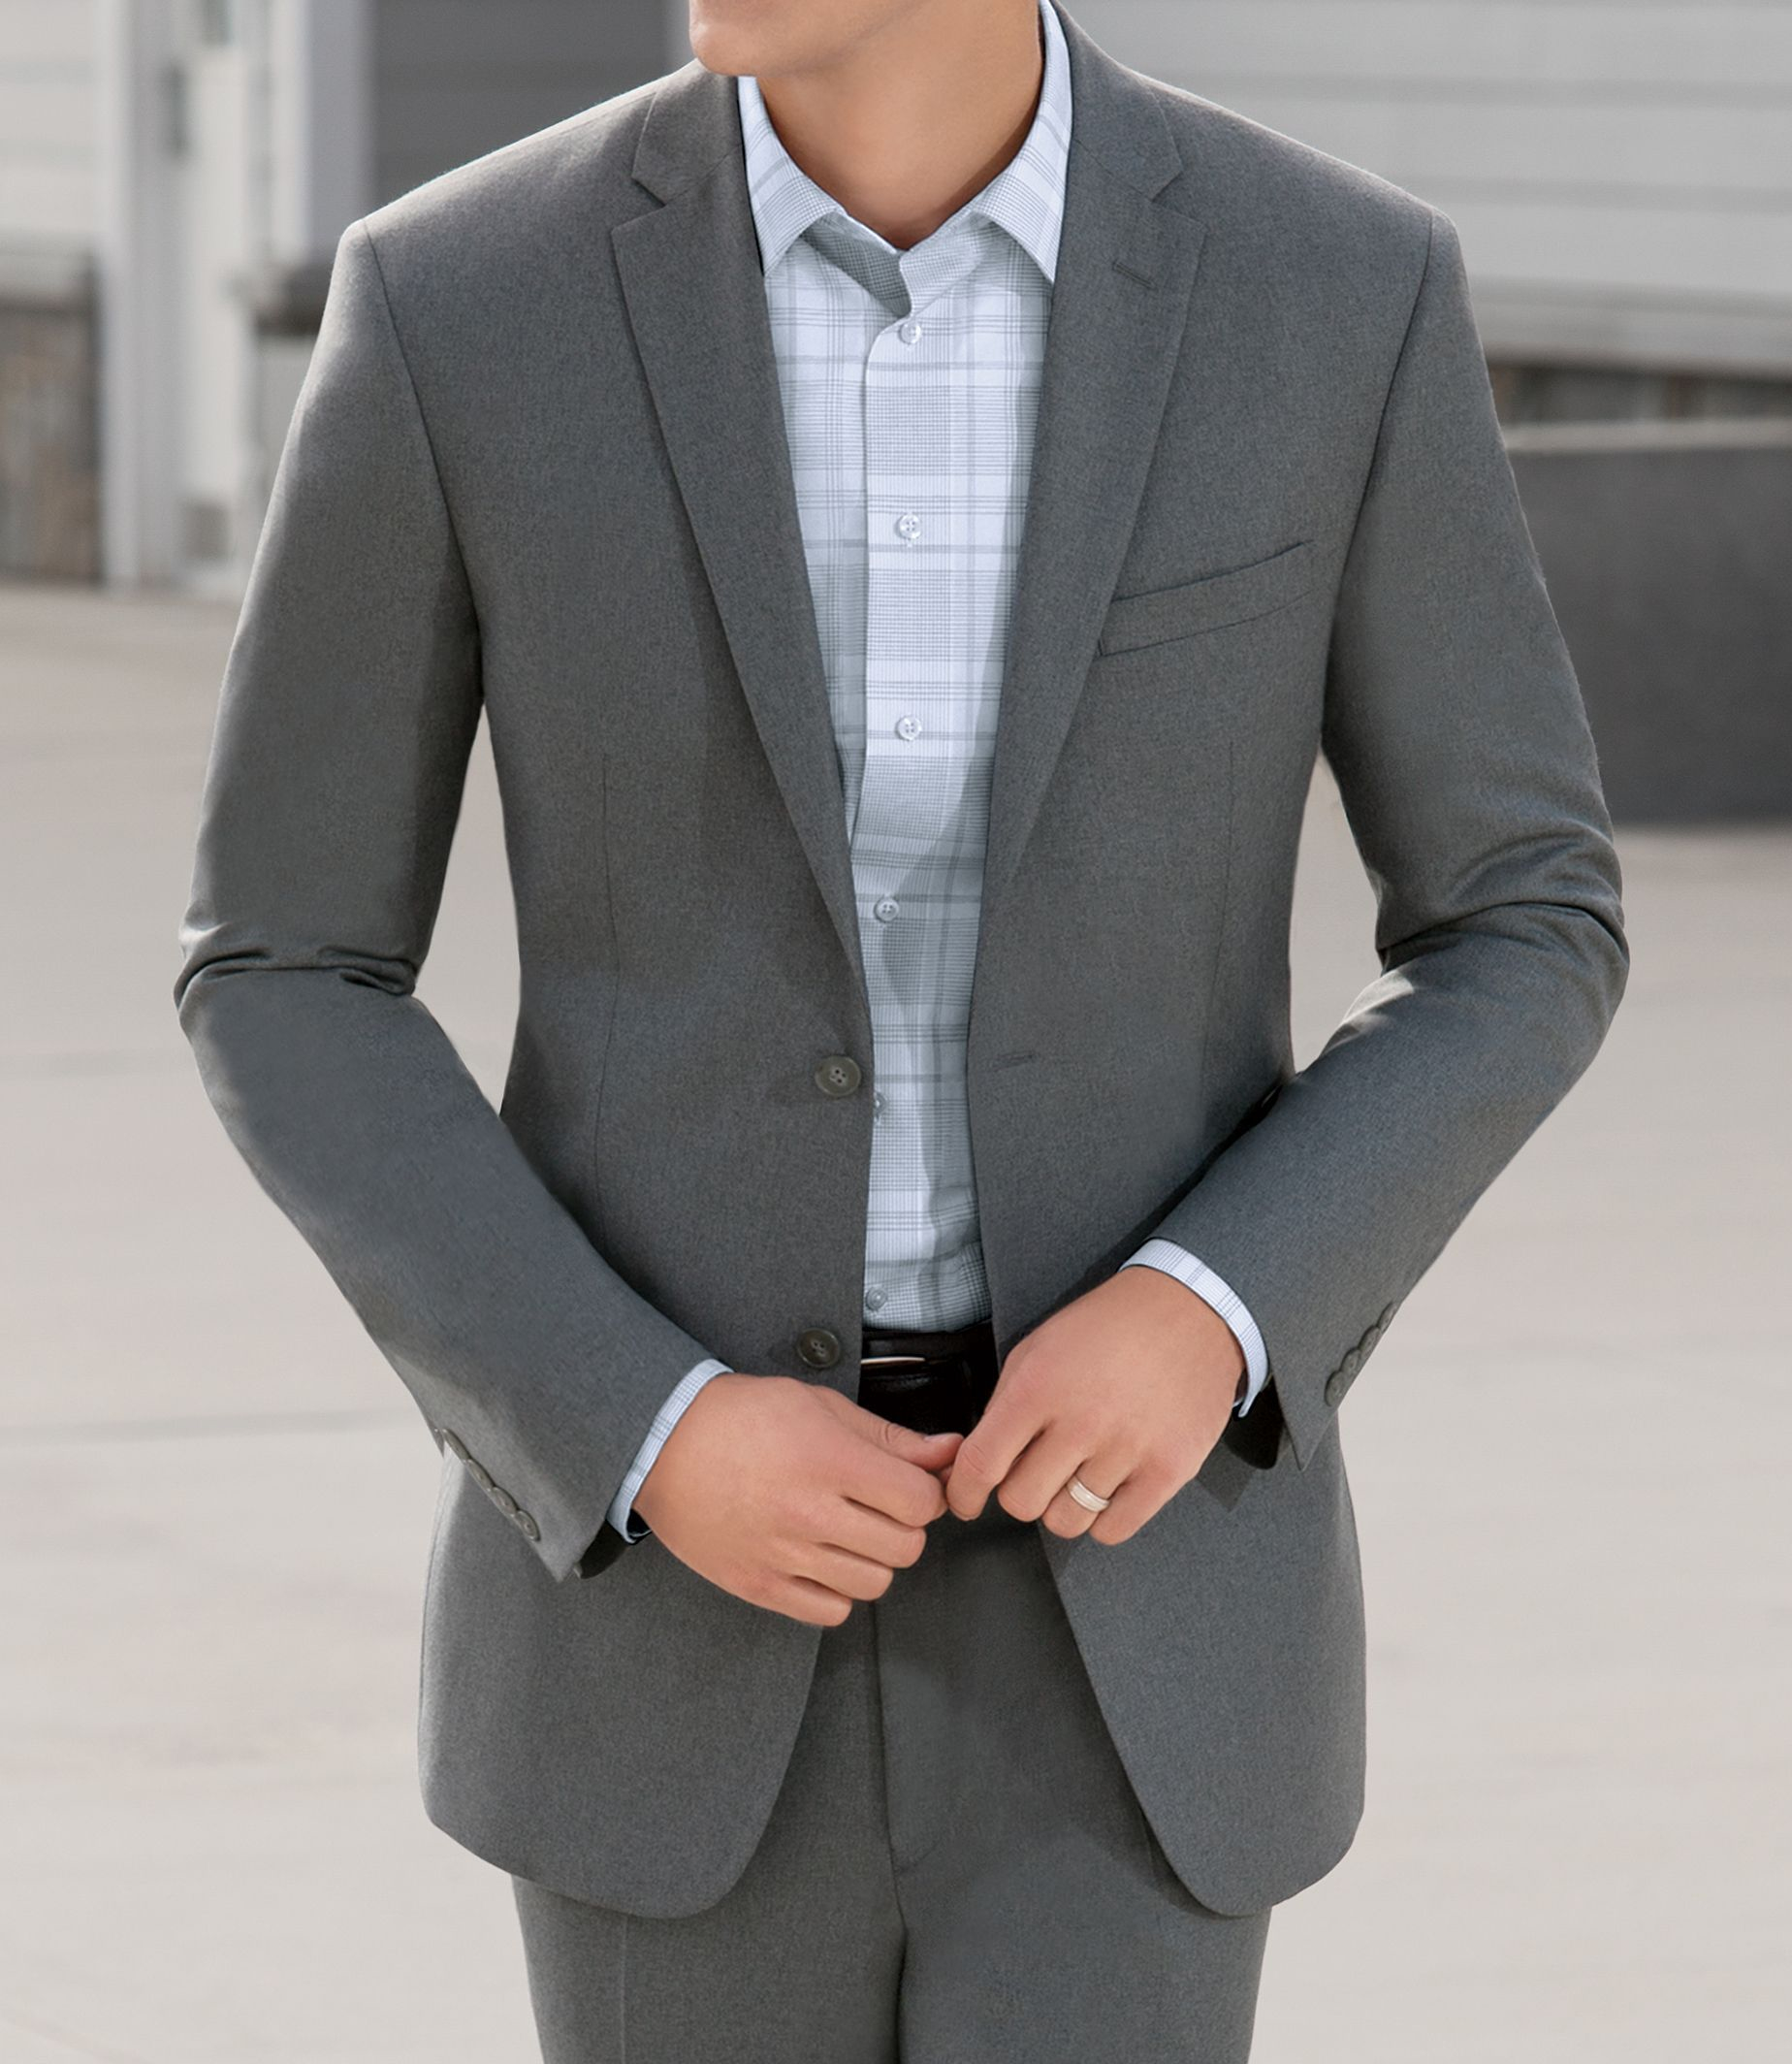 Jos a bank joseph slim fit 2 button suit separate jacket for Jos a bank tailored fit vs slim fit shirts